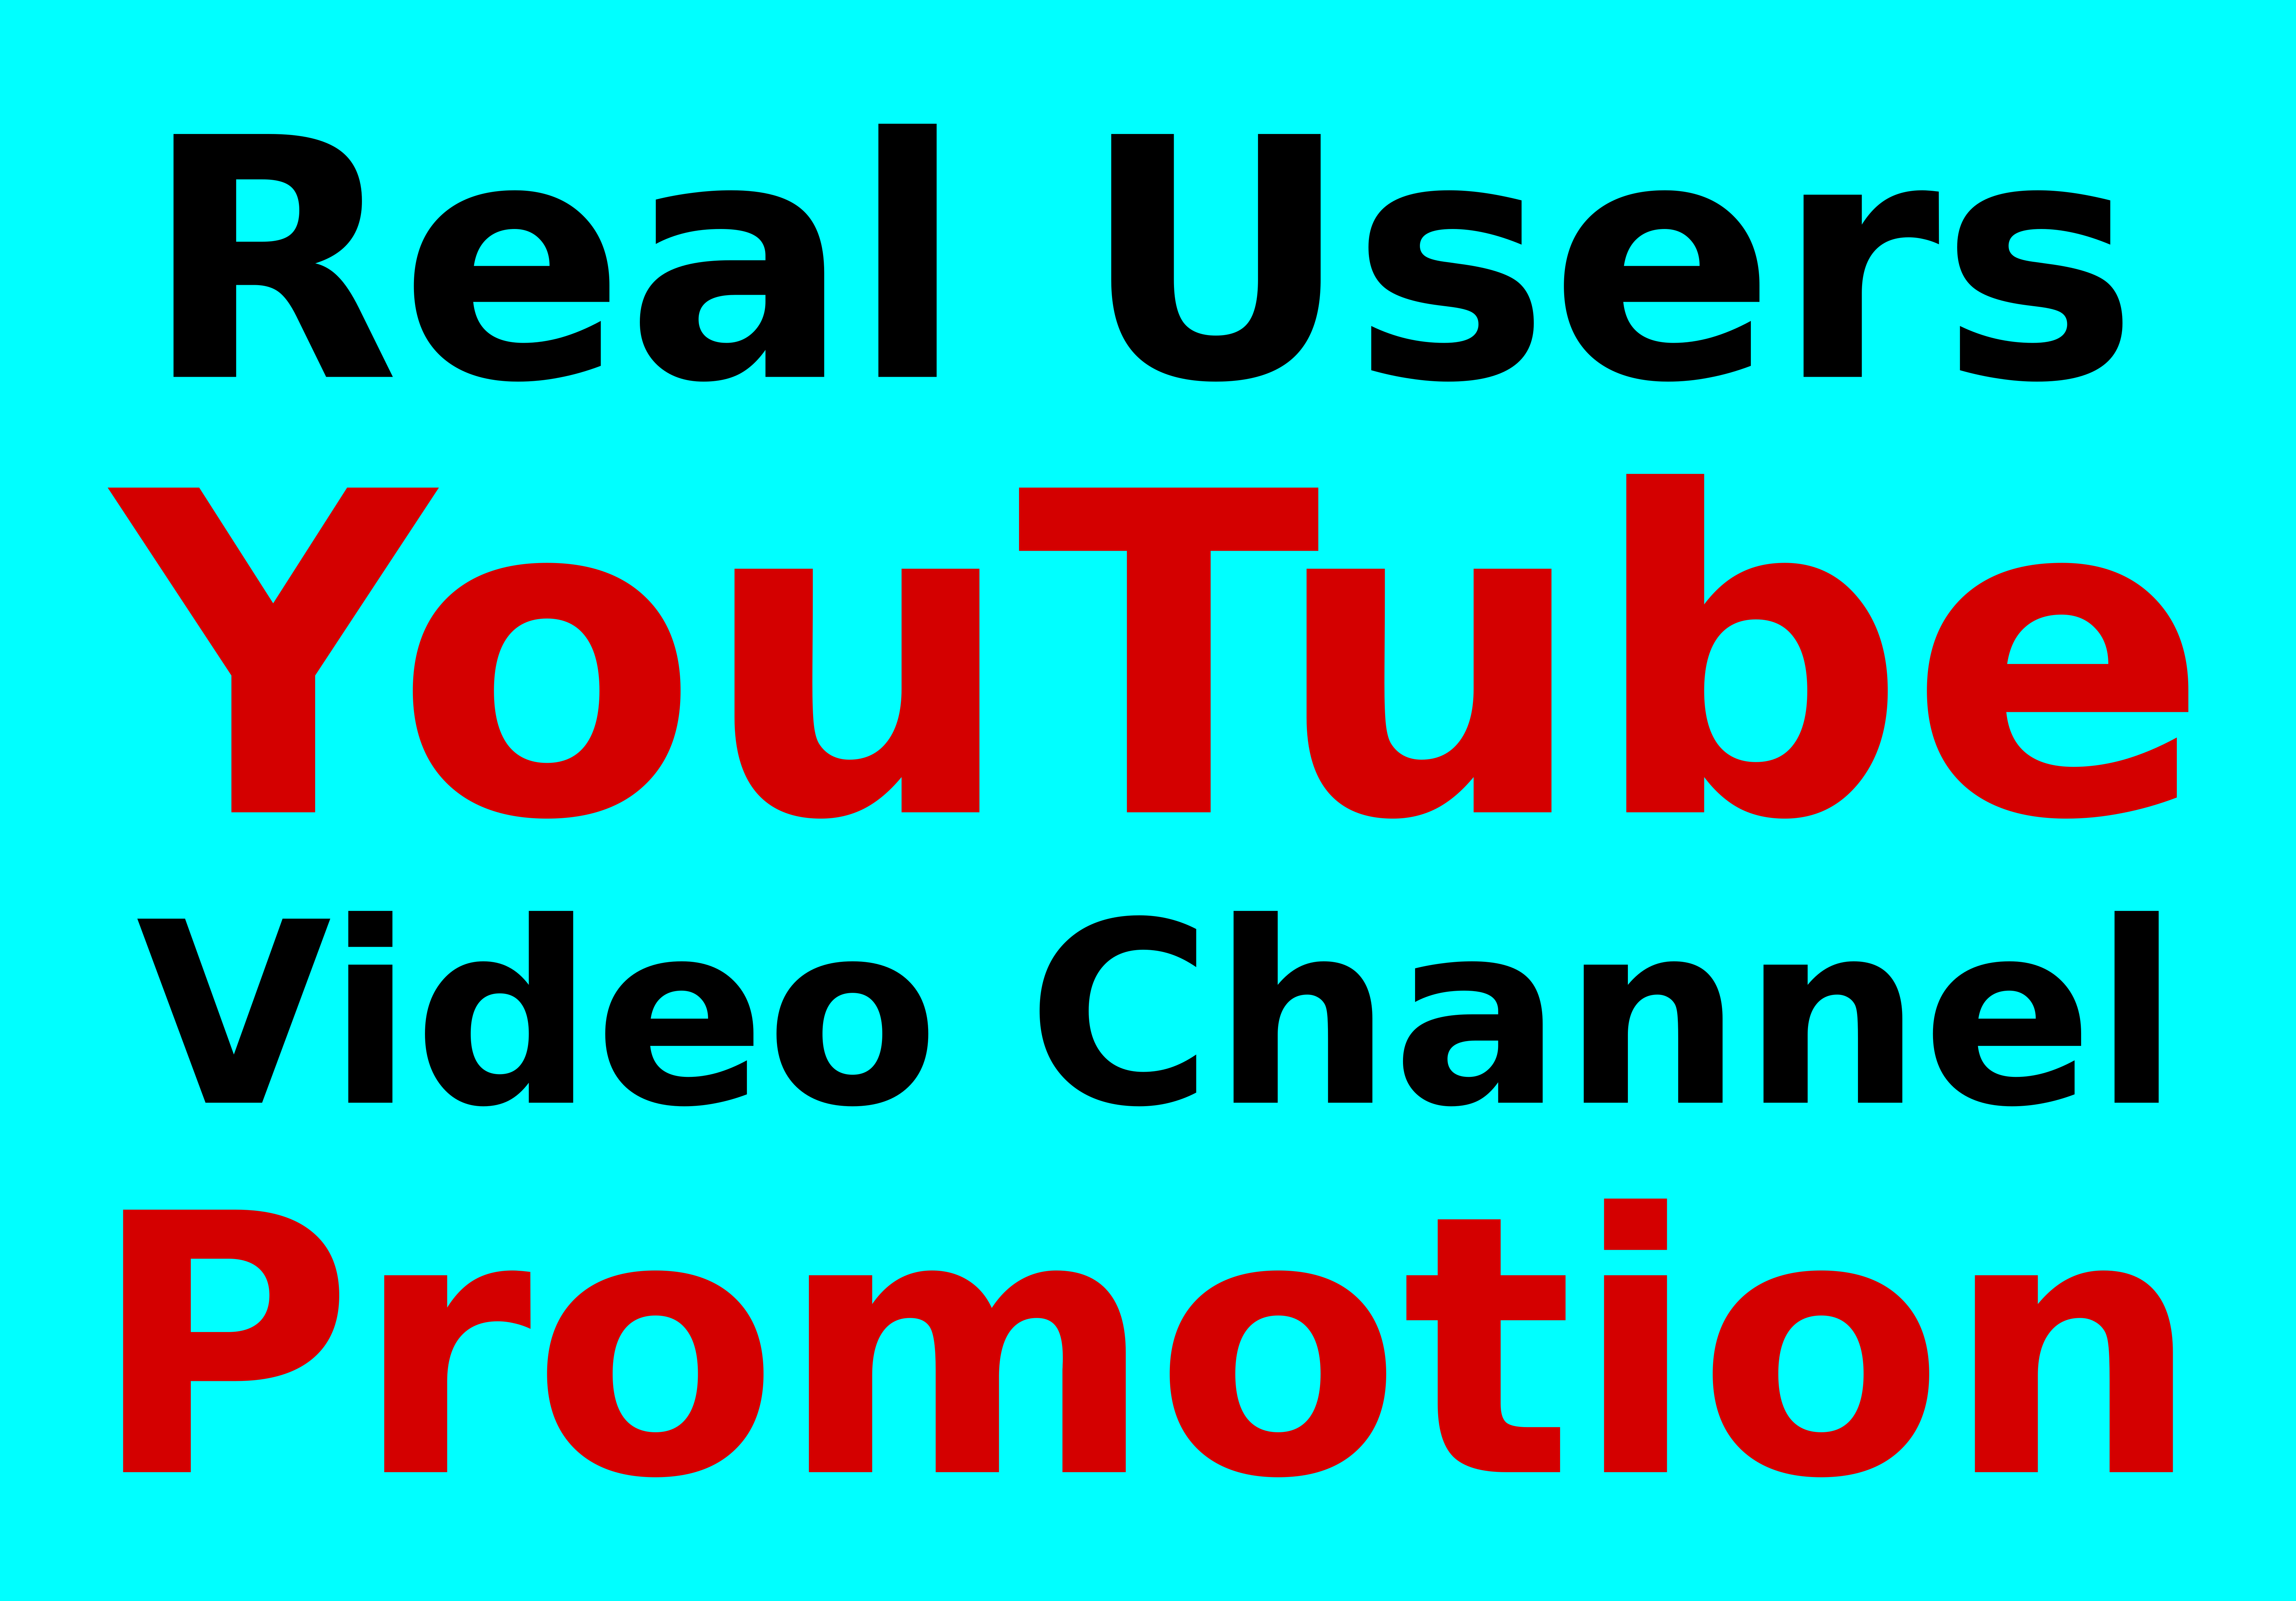 Real Users YouTube Video And Chanel Promotion